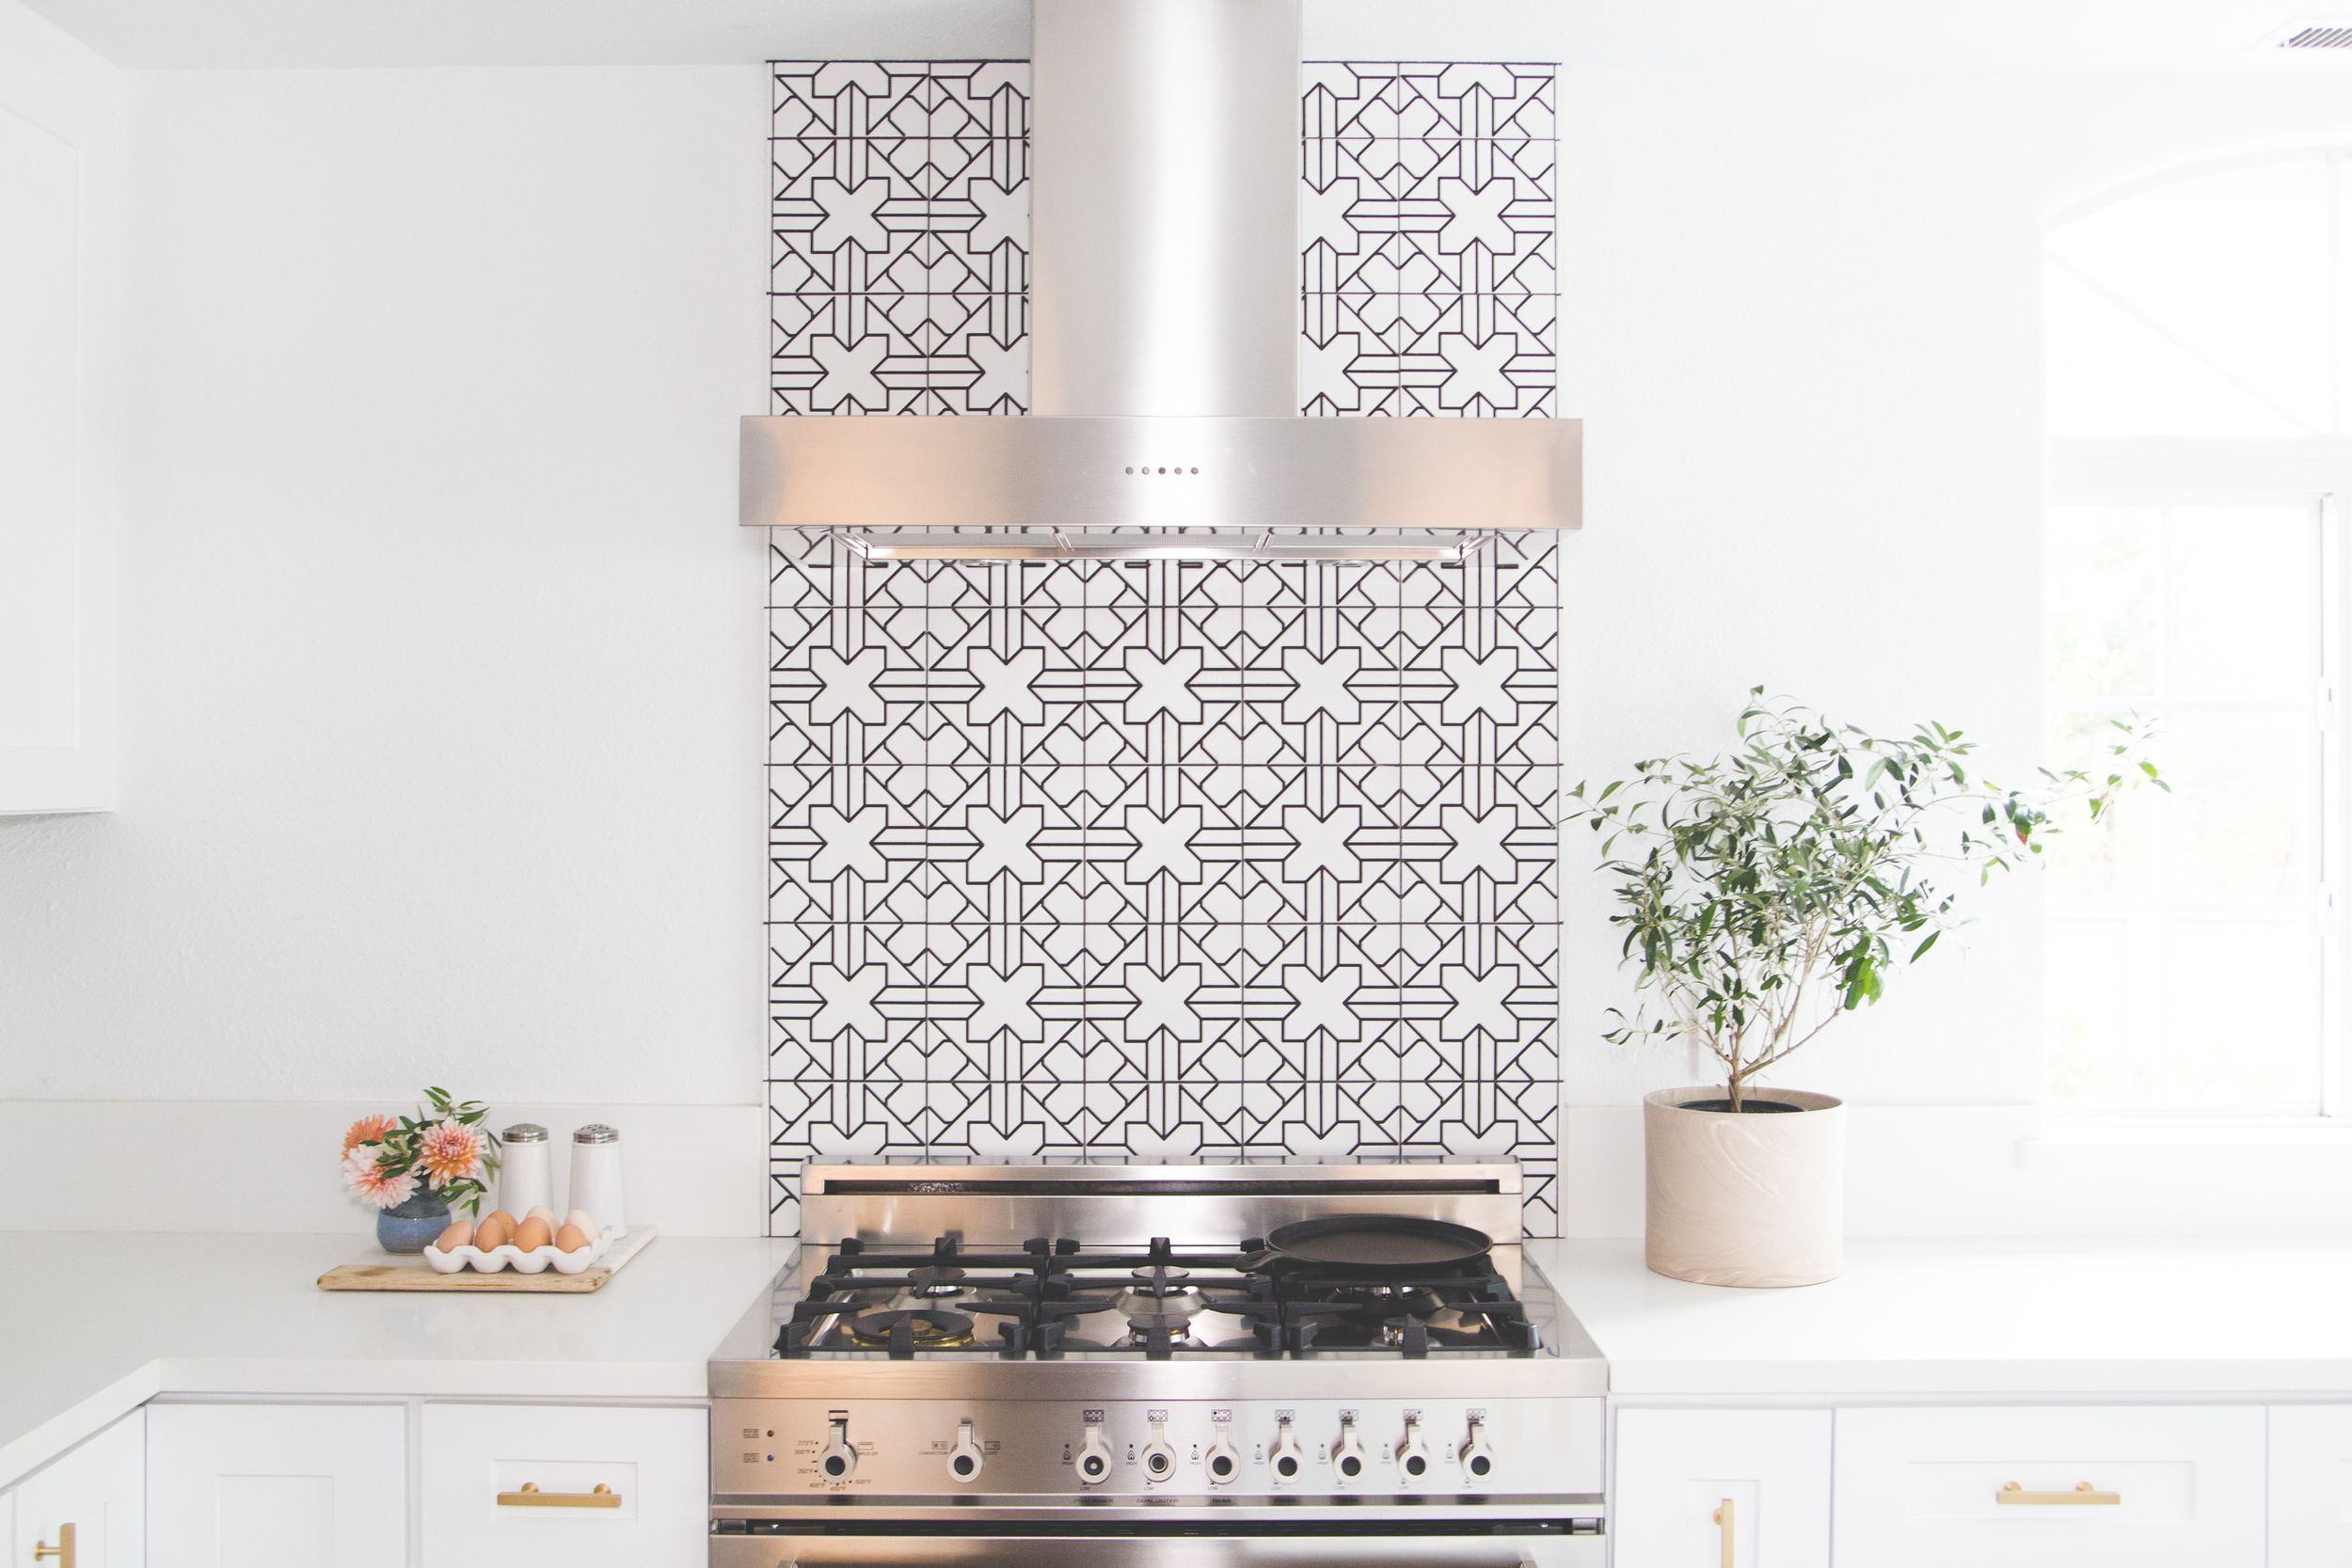 51 Insanely Chic Kitchen Backsplashes